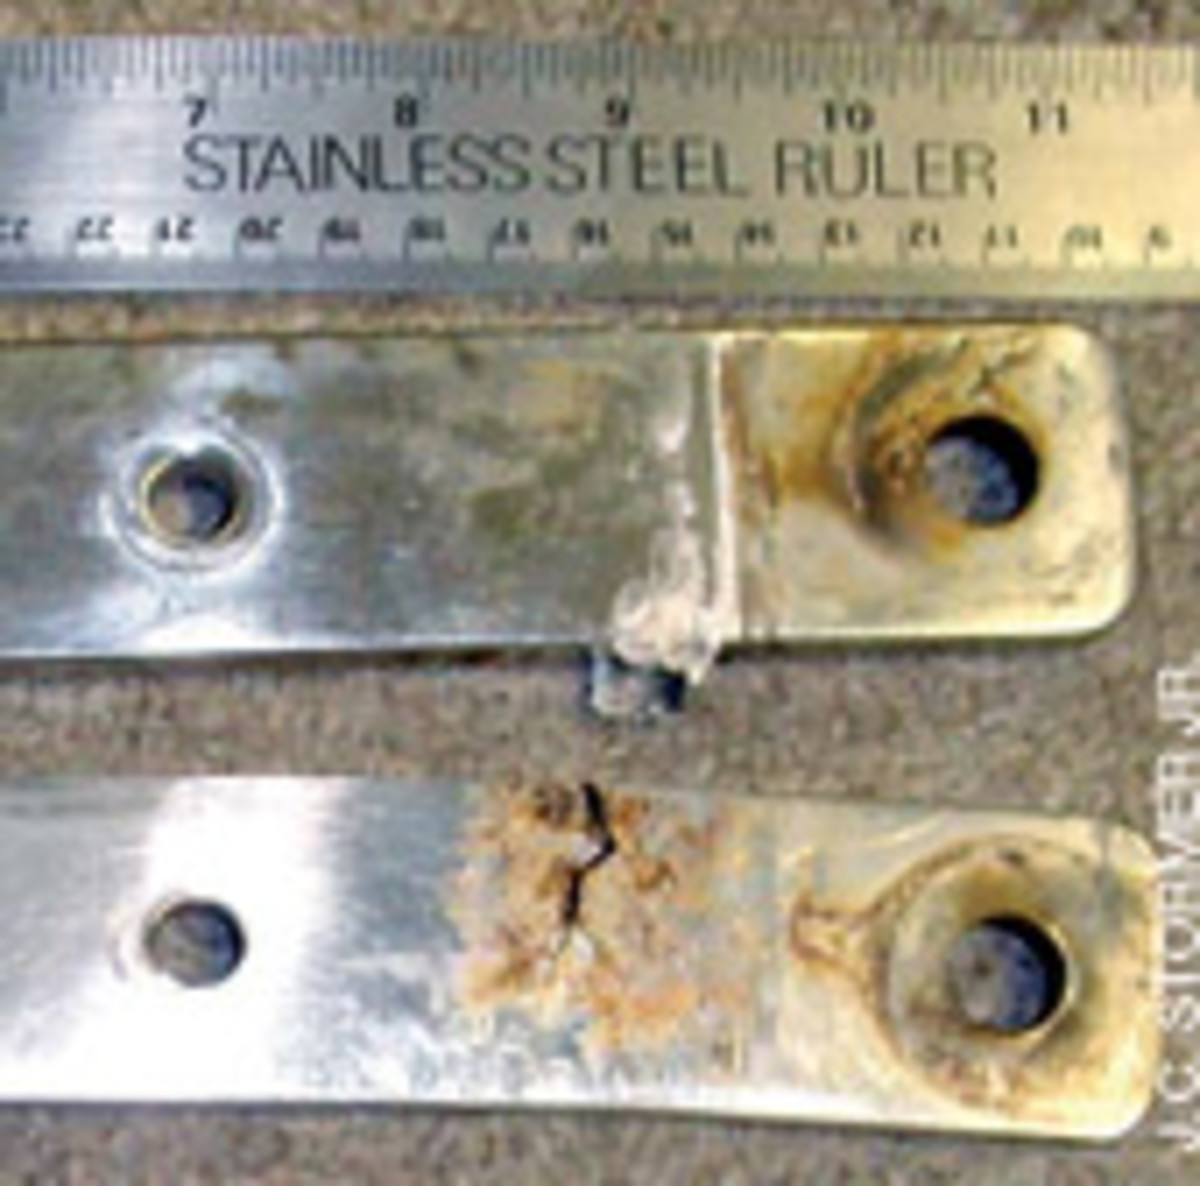 Some boats have fittings bolted through the deck rather than chain plates. Once the bedding of these fittings begins to leak, the bolts are subject to corrosion.